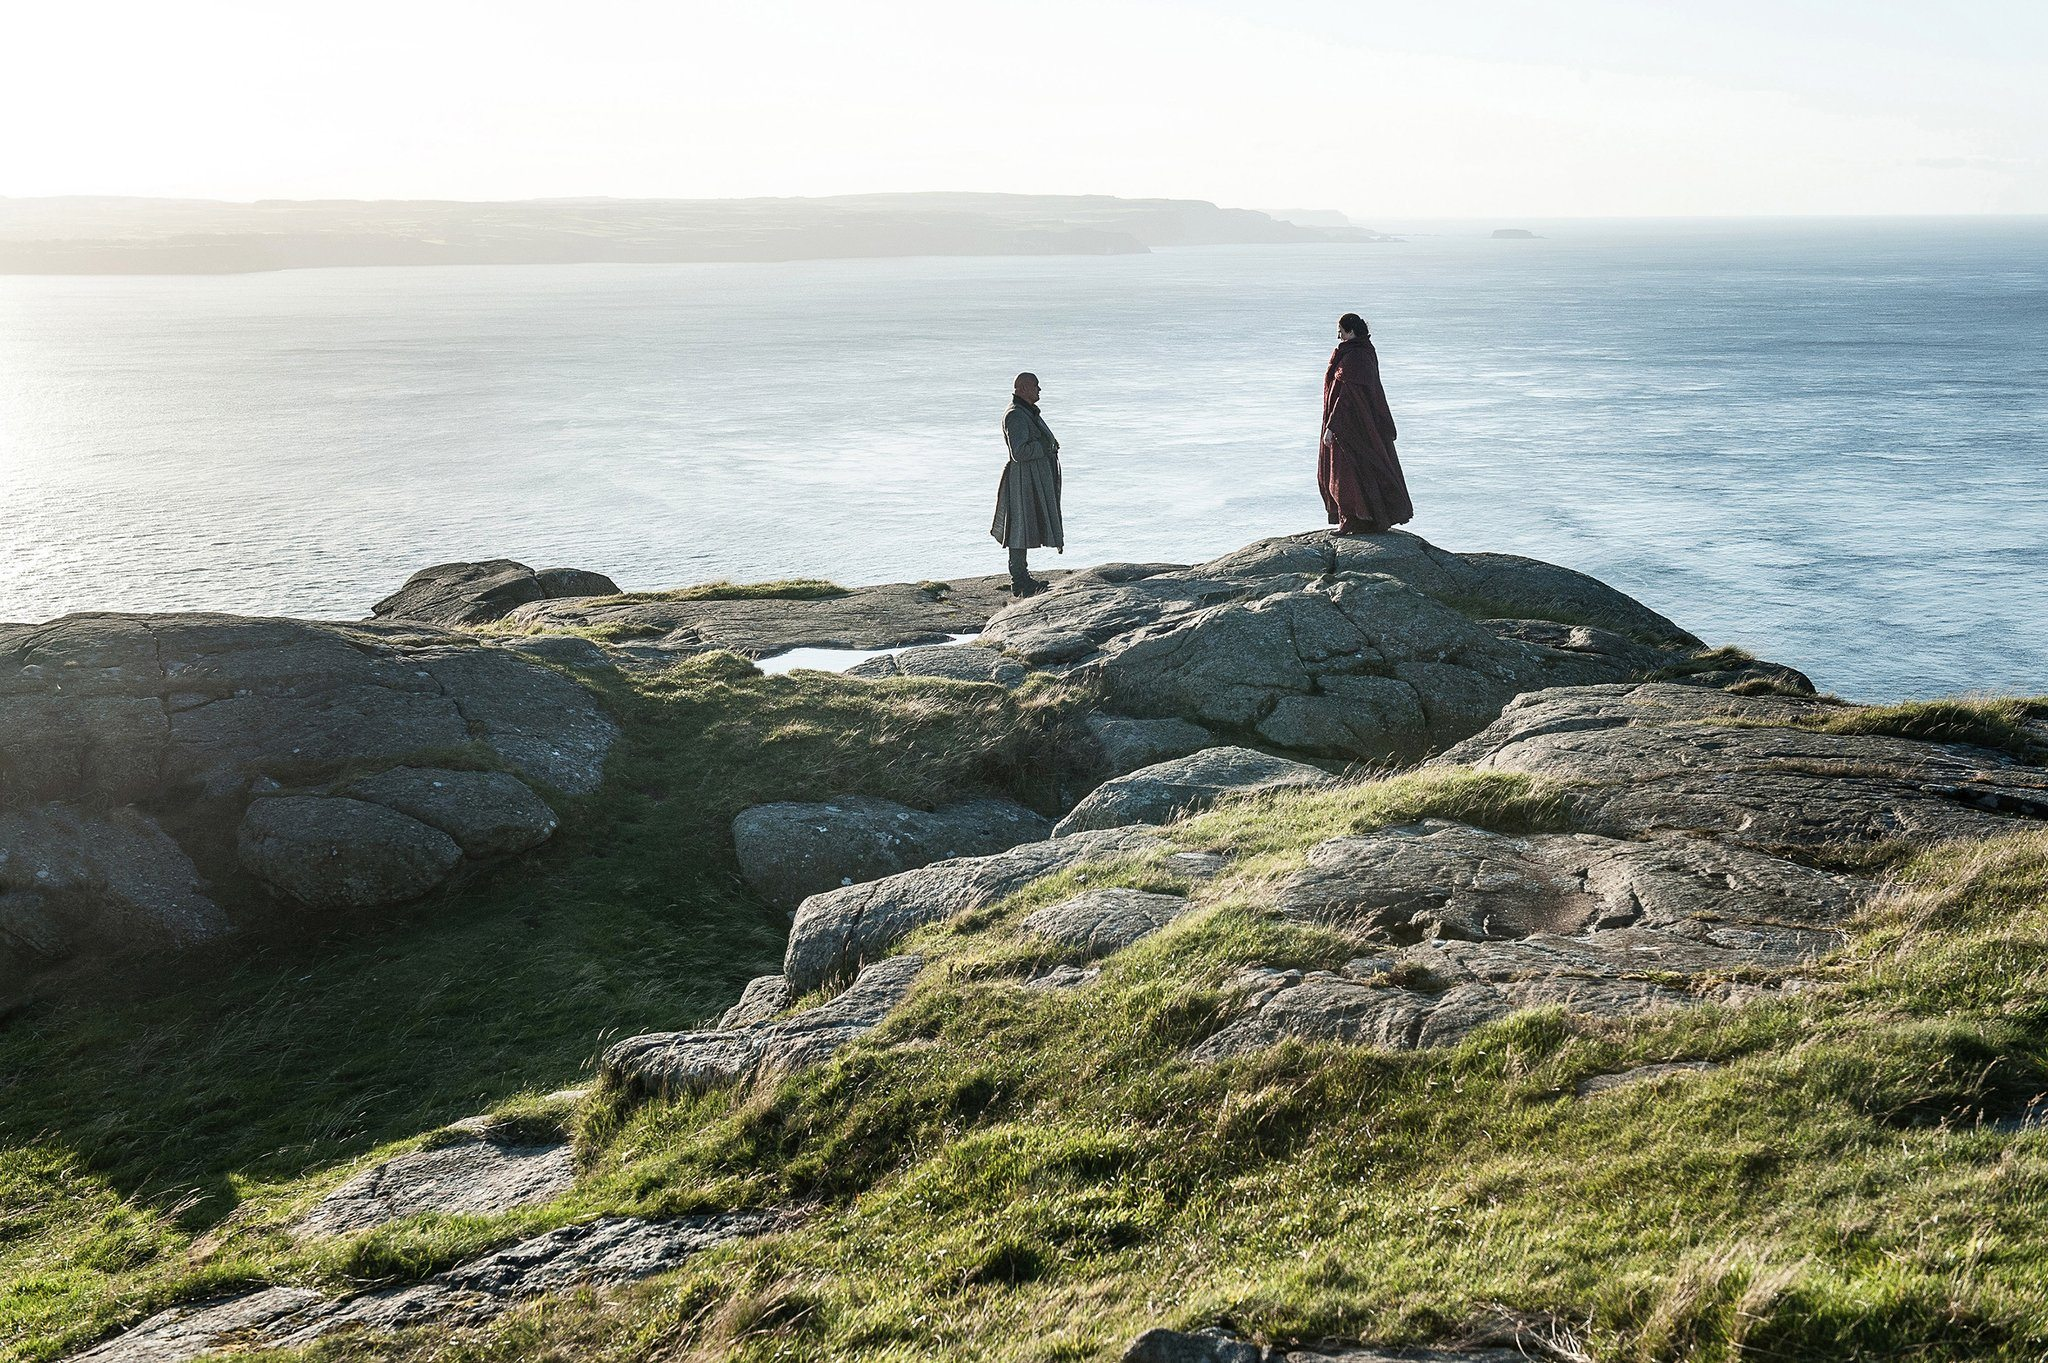 Varys and Melisandre speak on a cliff beside the ocean